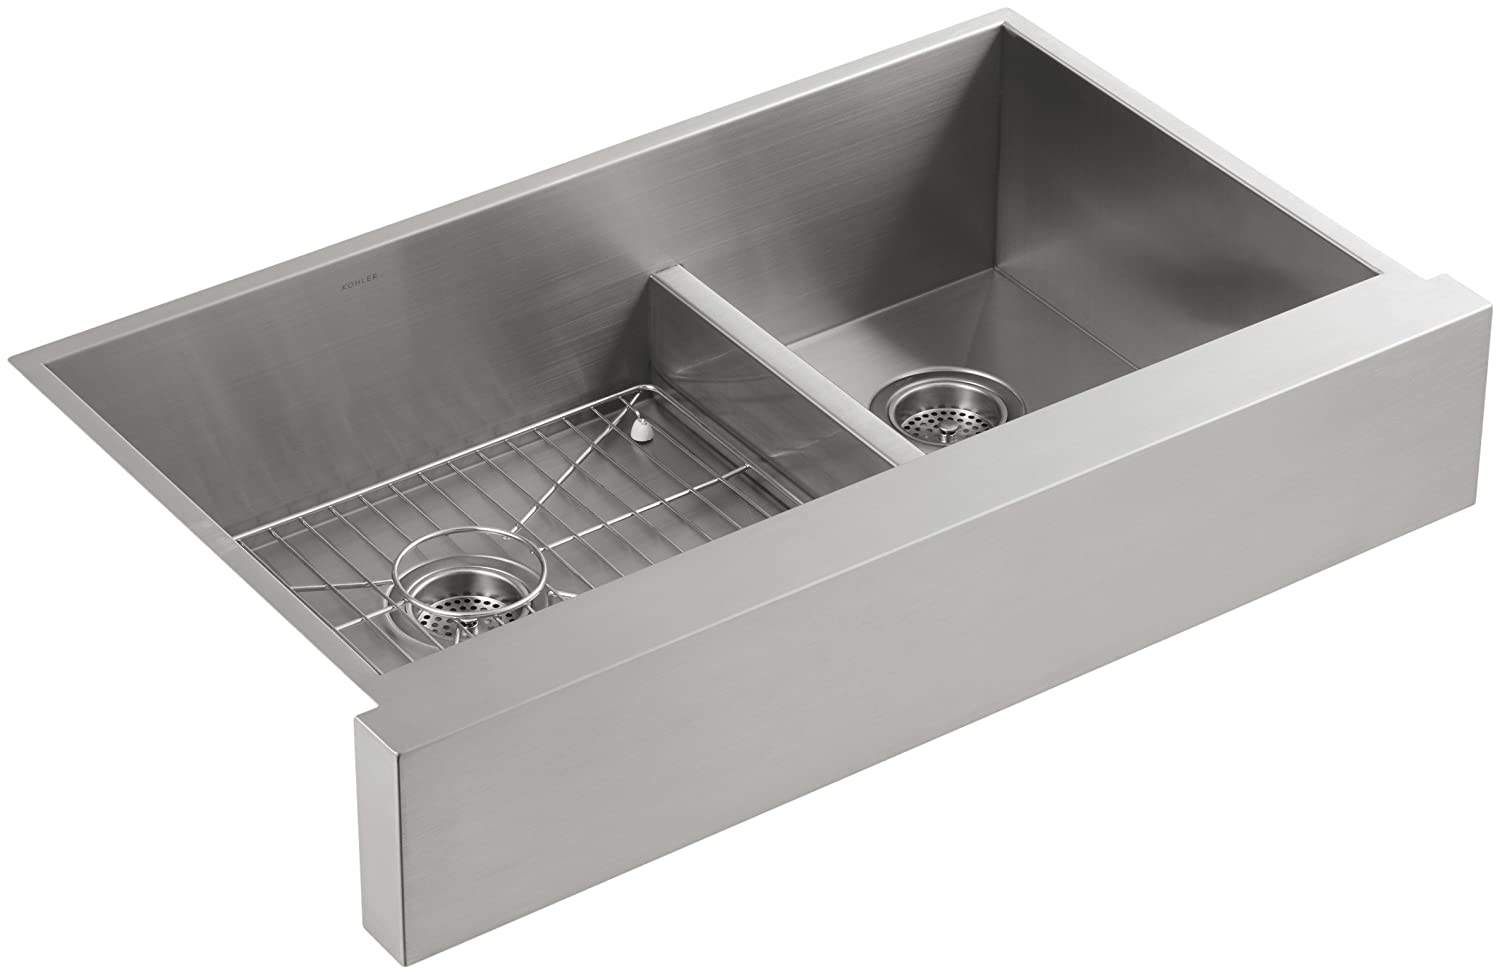 KOHLER K-3945-NA Vault Undercounter Offset Smart Divide Stainless Steel Sink with Shortened Apron-Front for 36-Inch Cabinet